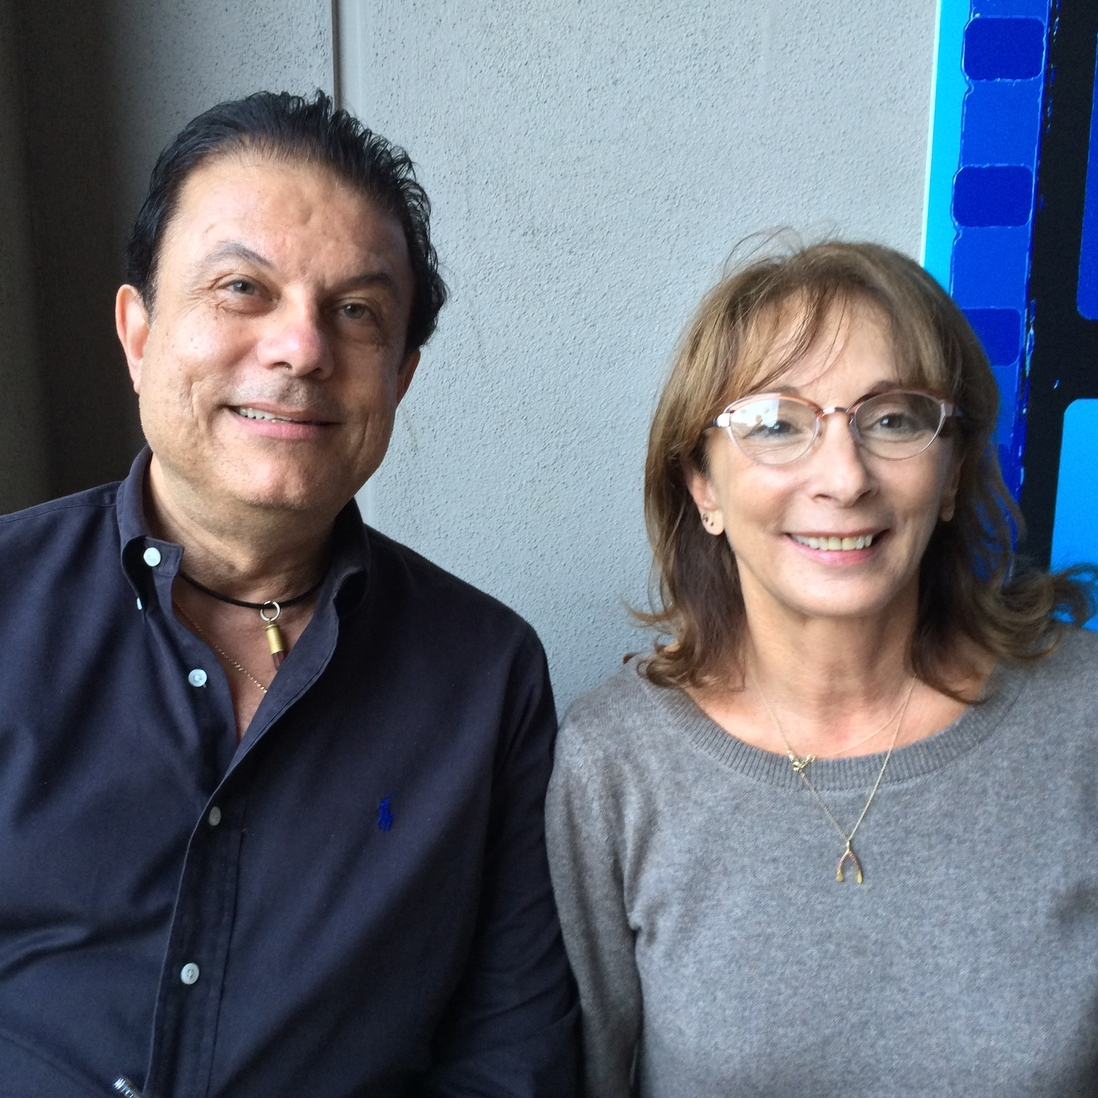 Joe Ippolito and friend Lynda Obst  (producer Sleepless in Seattle, Hope Floats, Fisher King, How to Lose a Man in 10 Days)